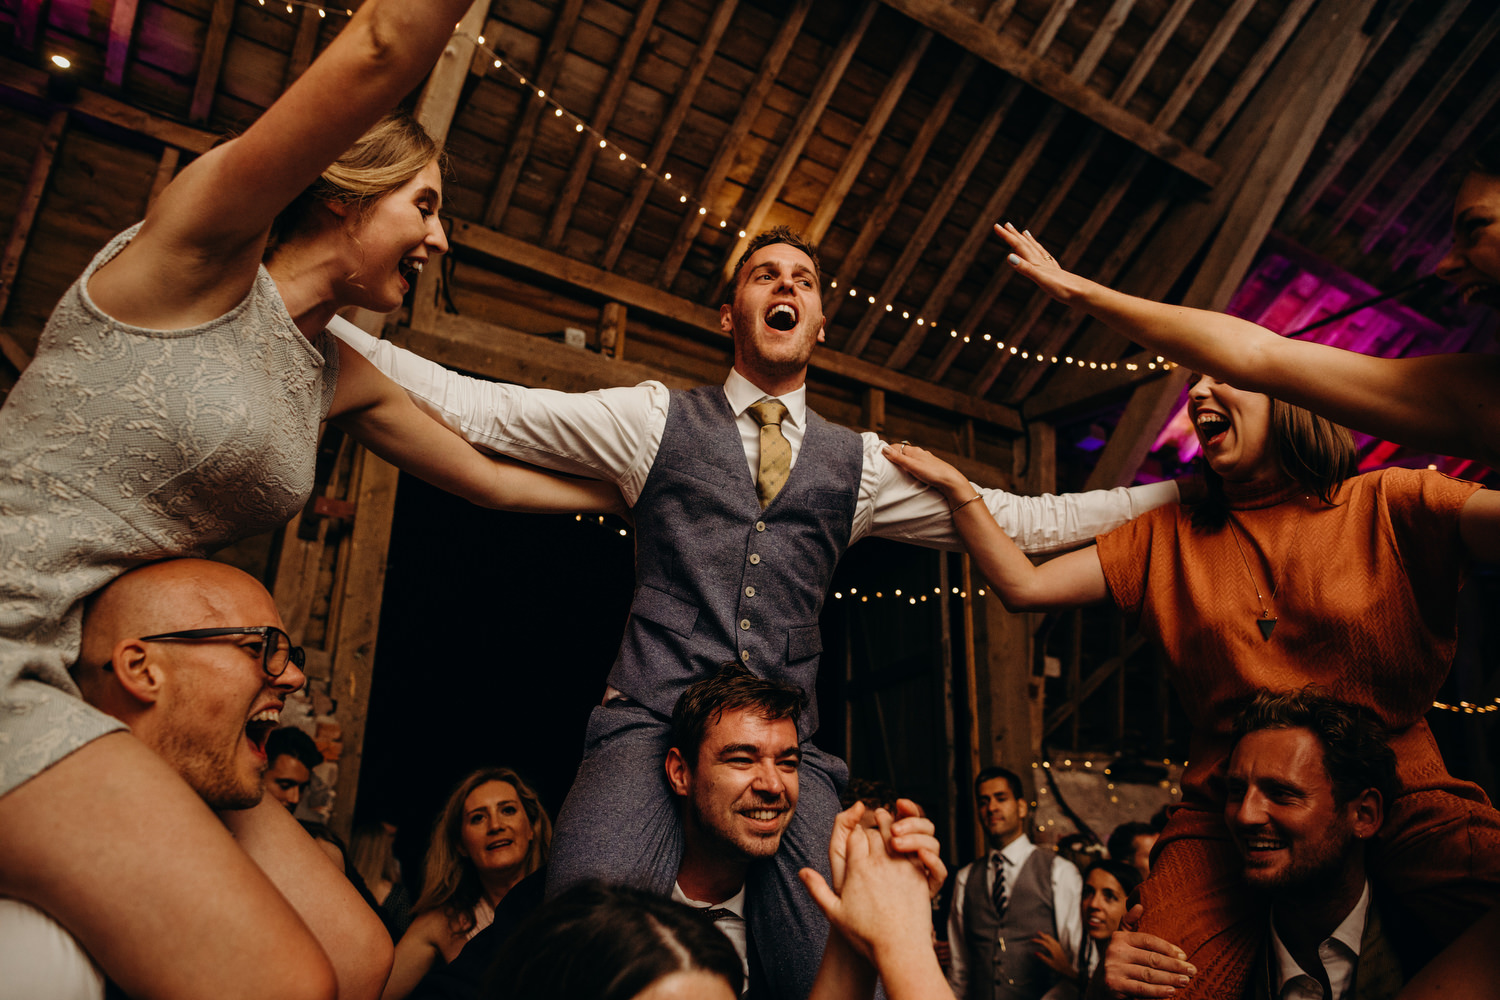 groom on shoulders of guest at wedding